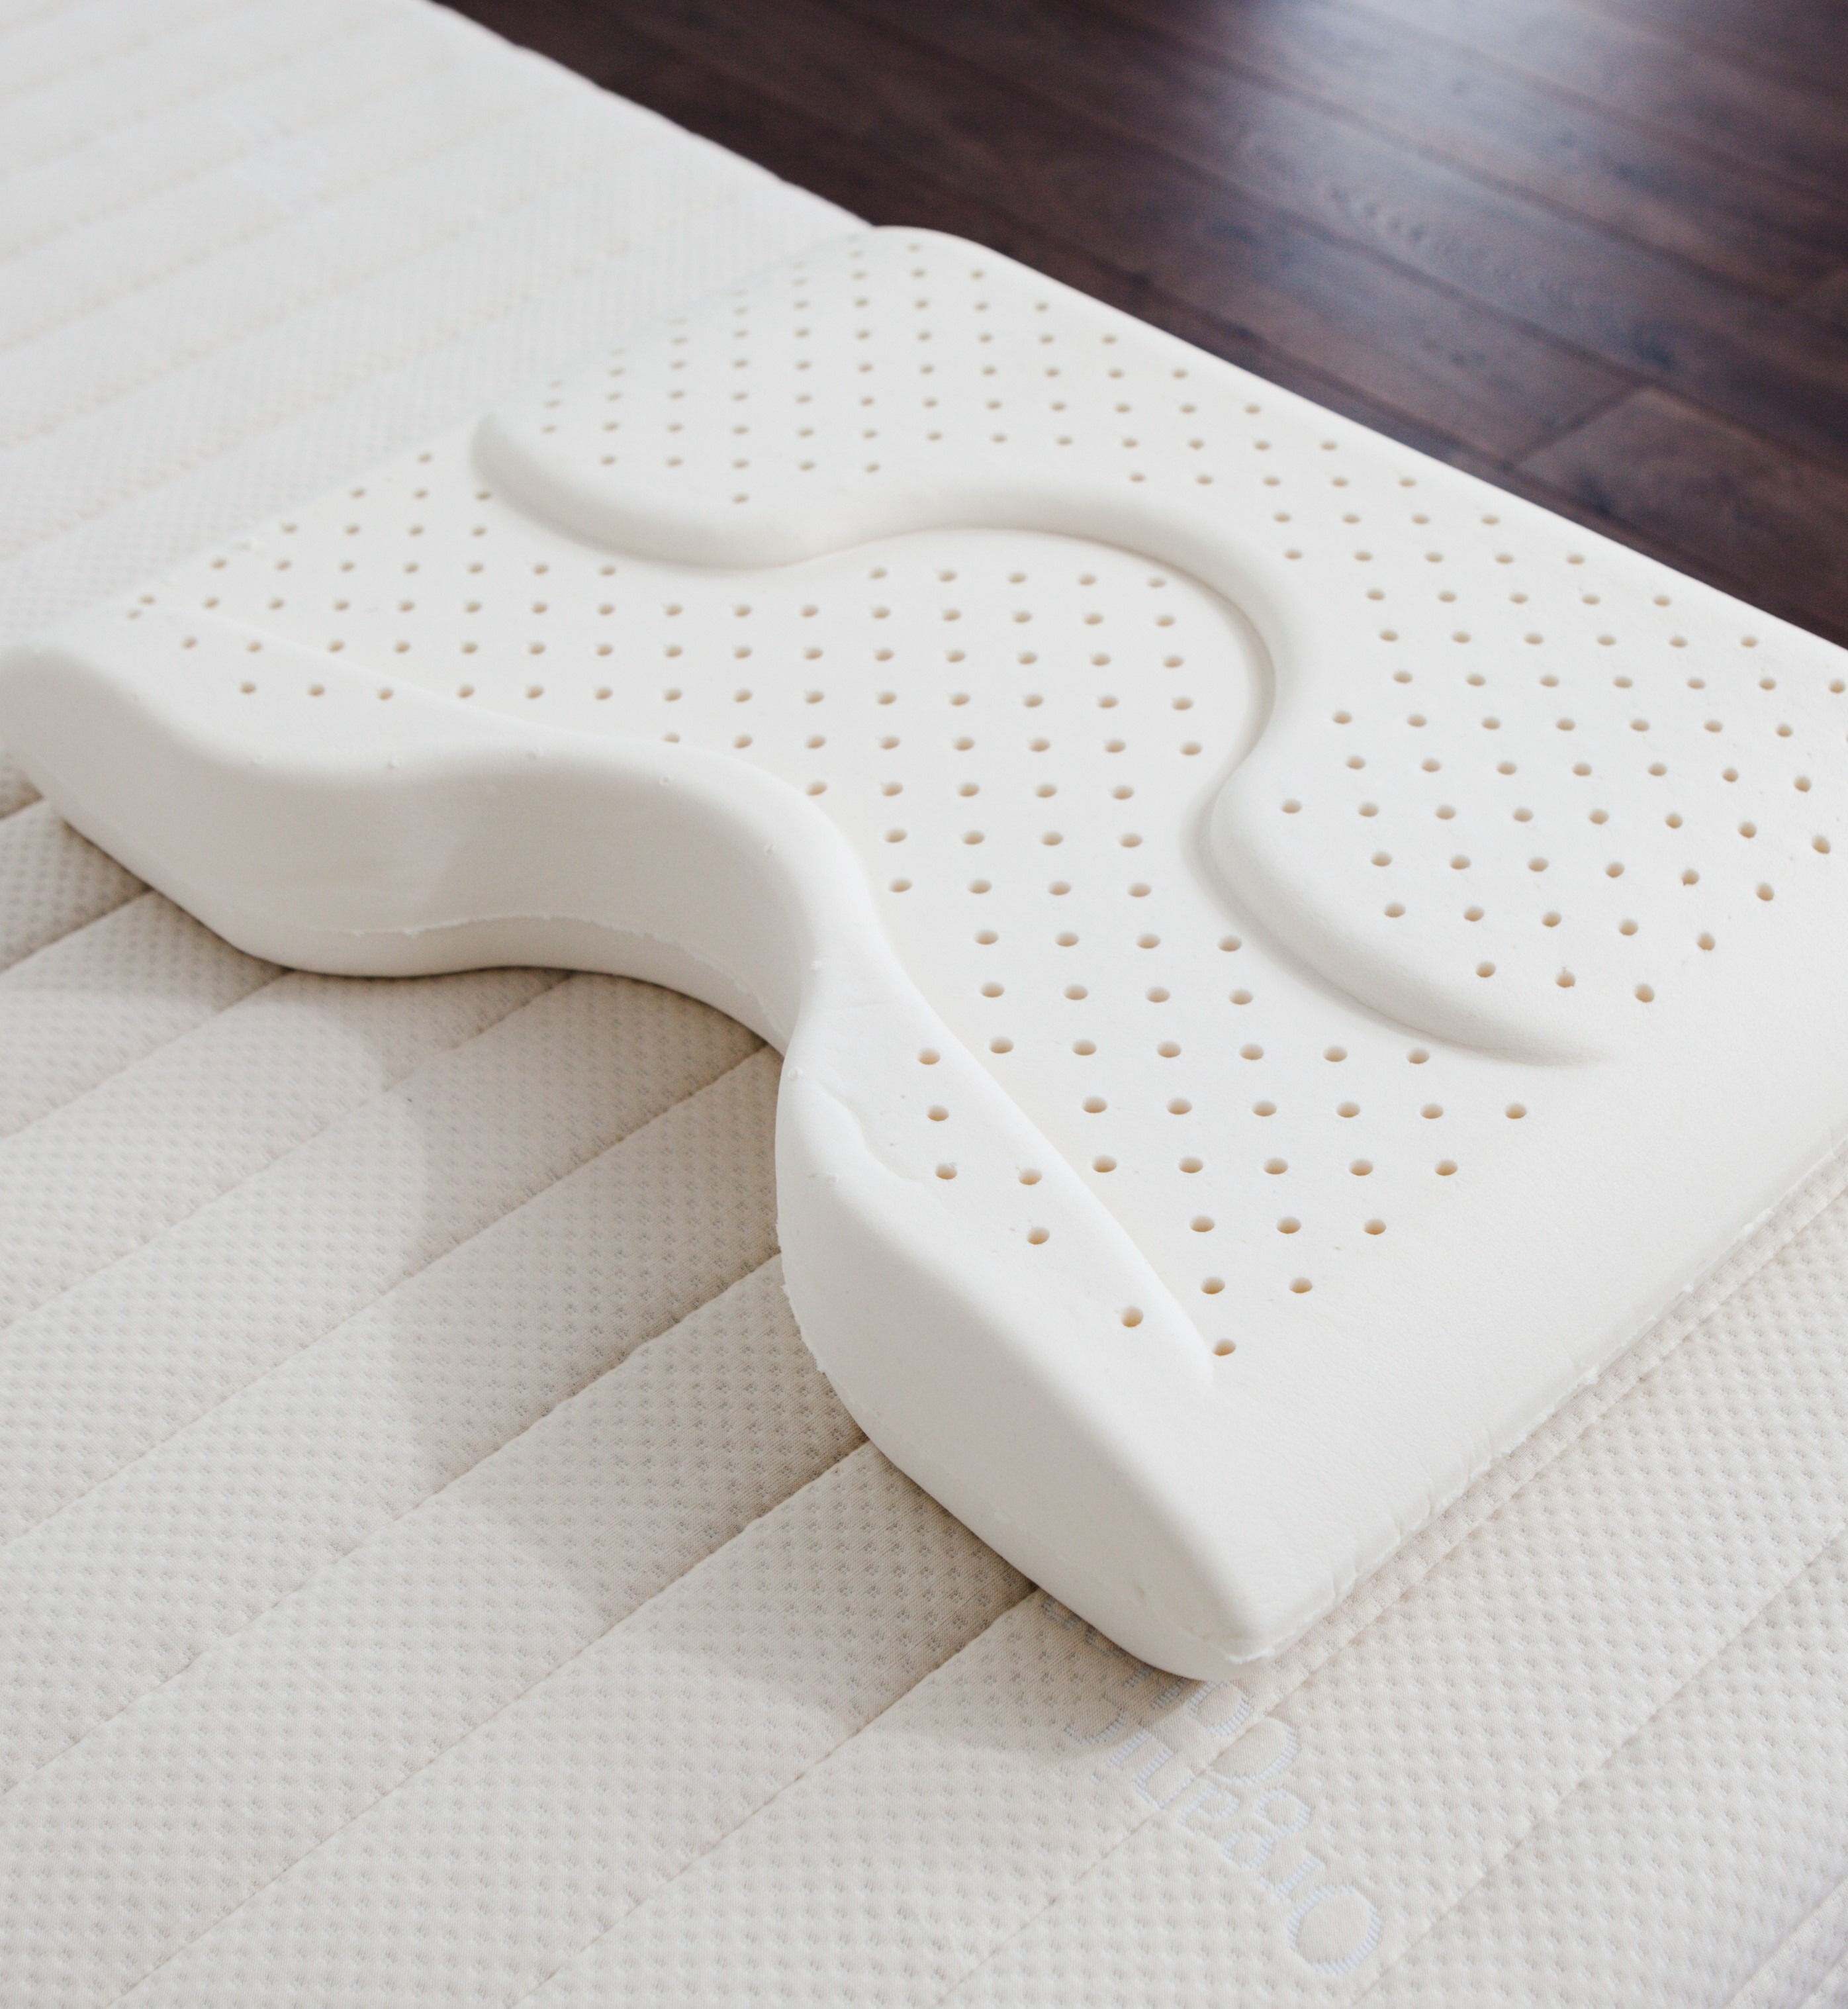 The Dream Pillow On Mattress with no cover with wood floor background